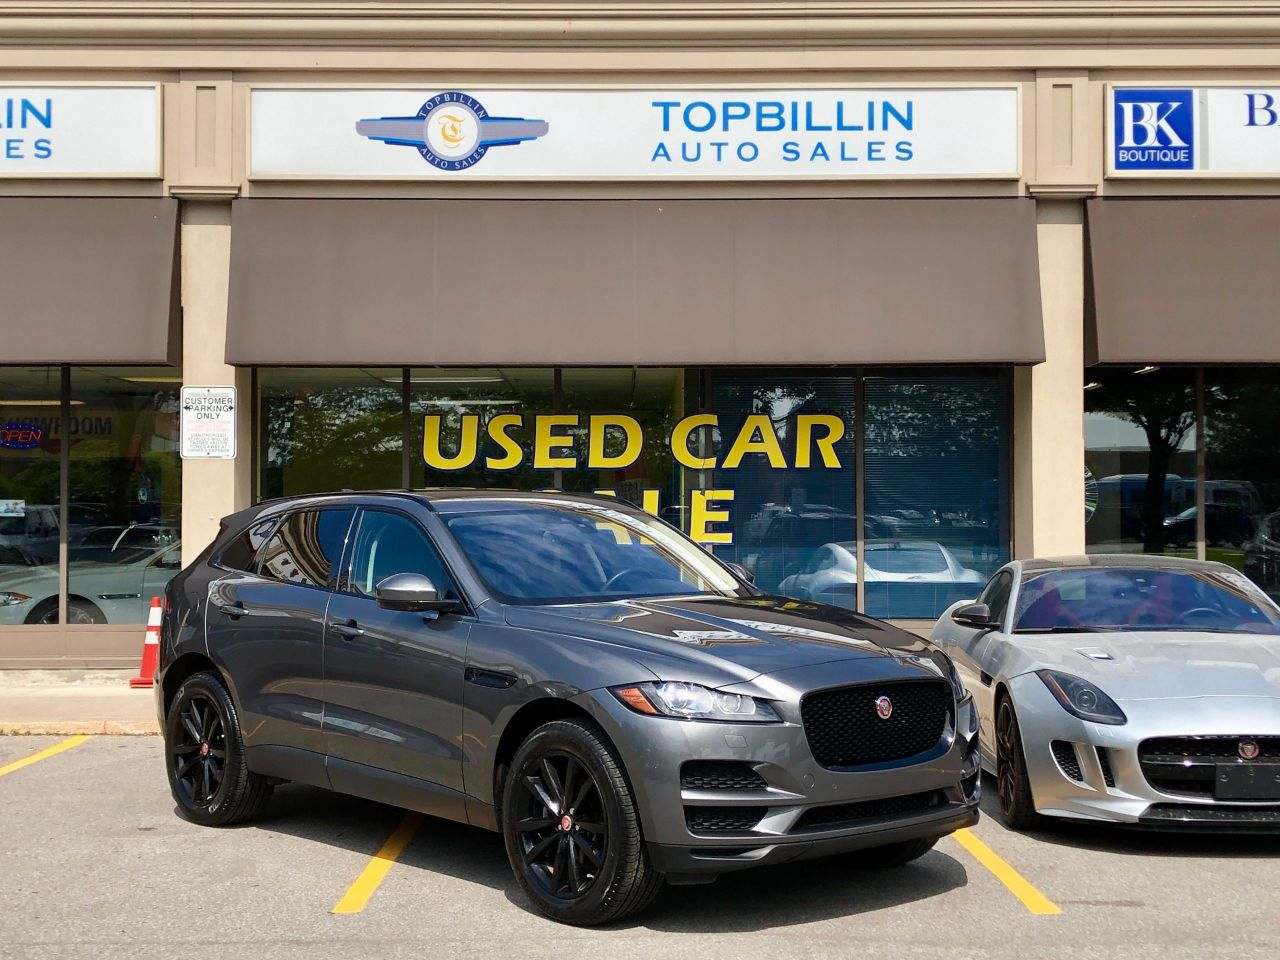 2018 Jaguar F-PACE Prestige, Fully Loaded, No Accidents